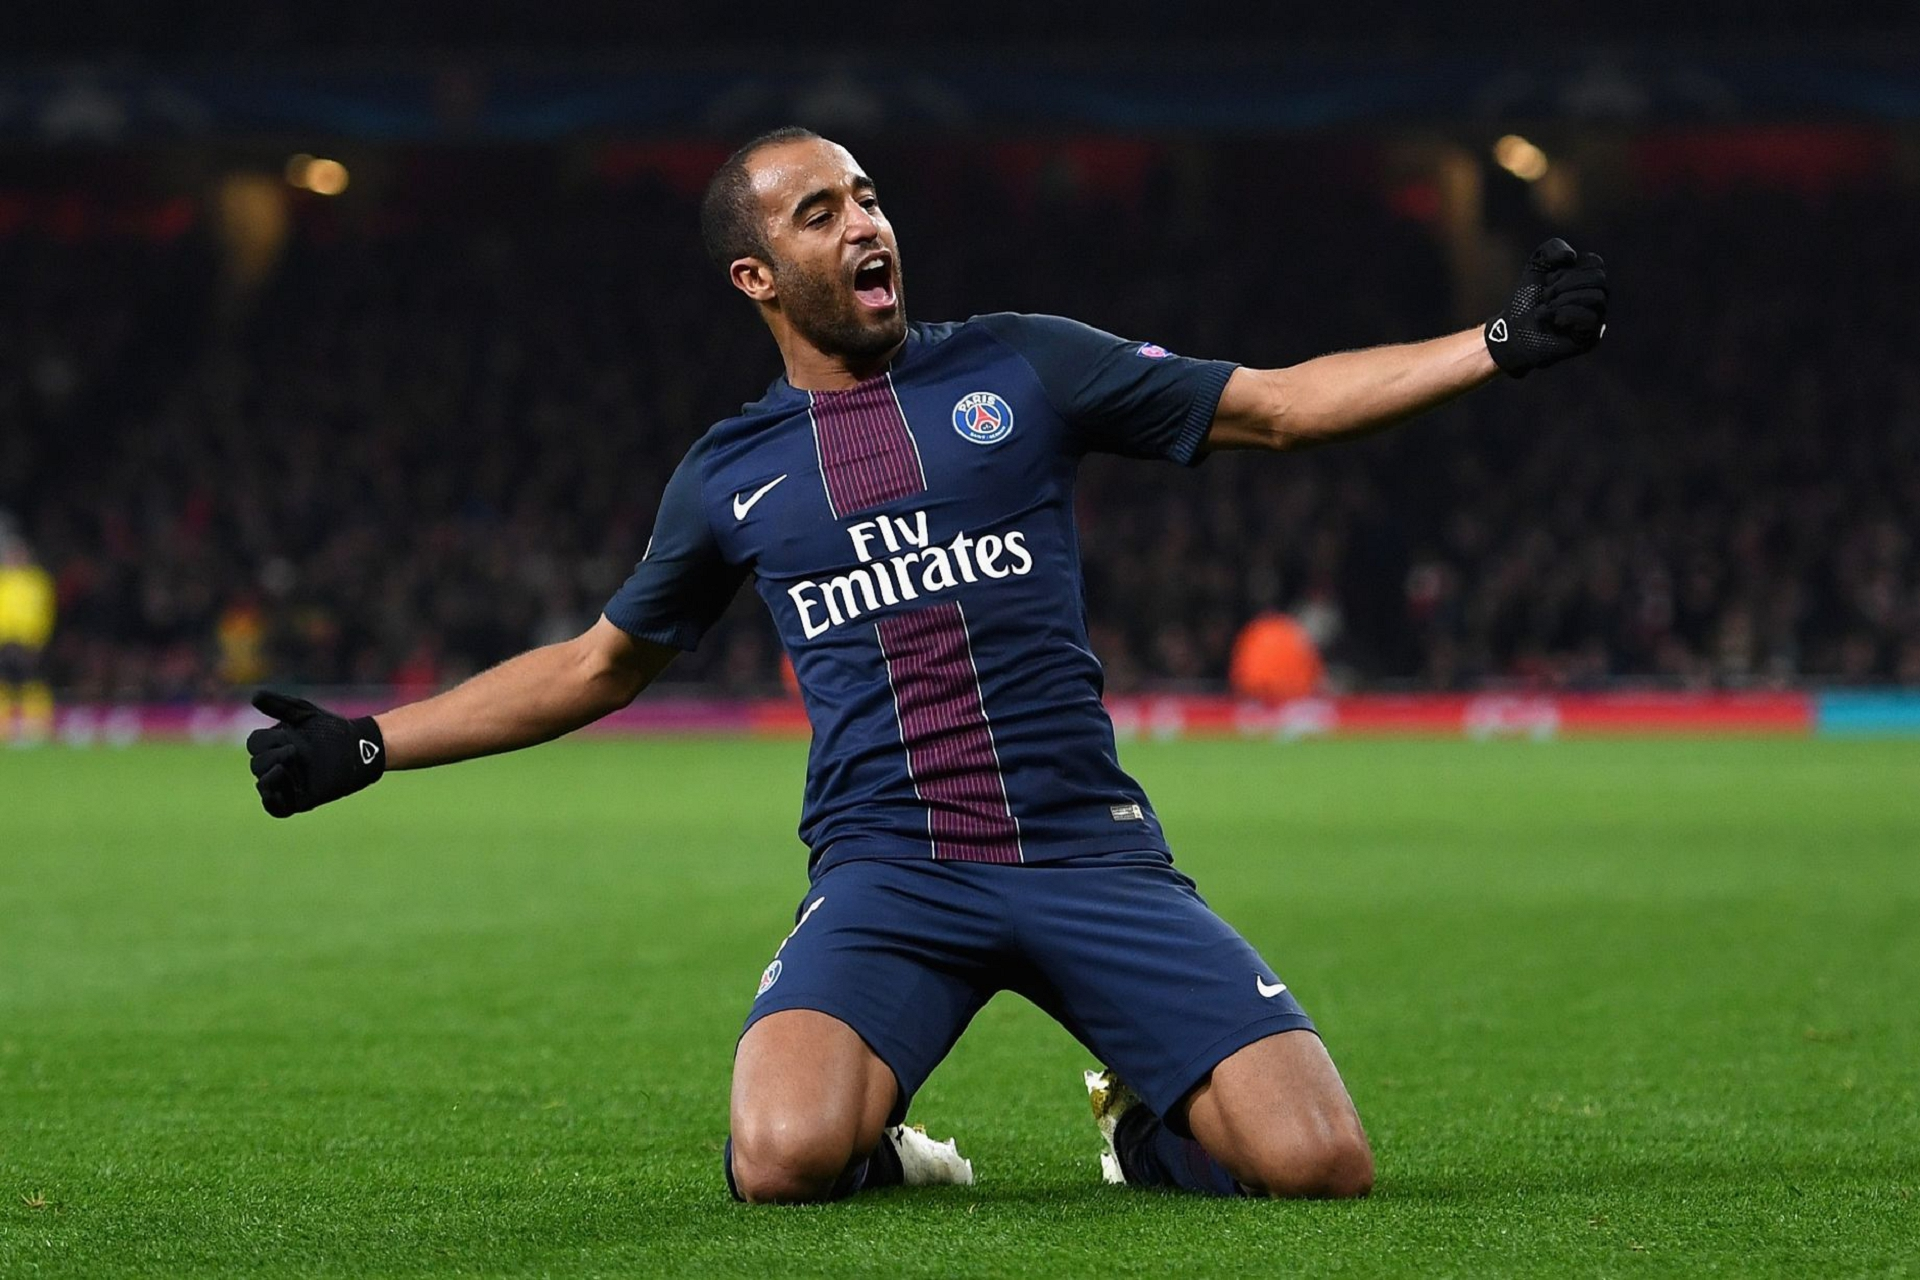 Paris Saint Germain Images